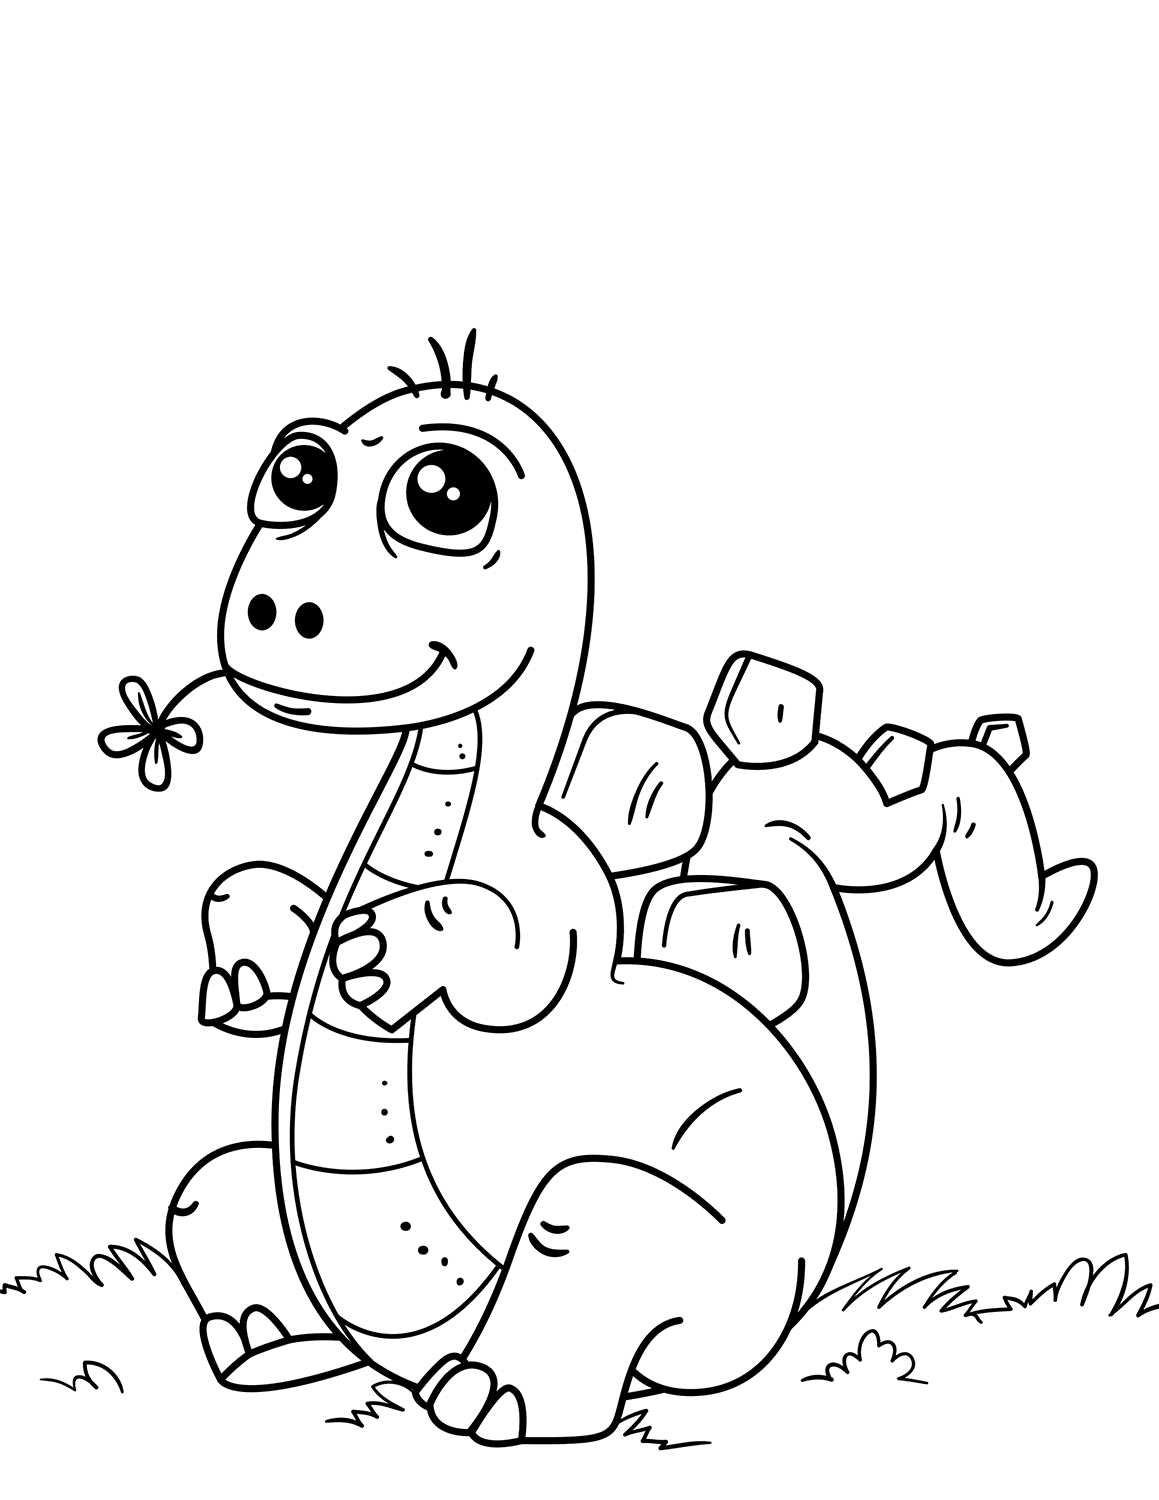 dinosaur coloring pages printable free free printable dinosaur coloring pages for kids dinosaur free printable pages coloring